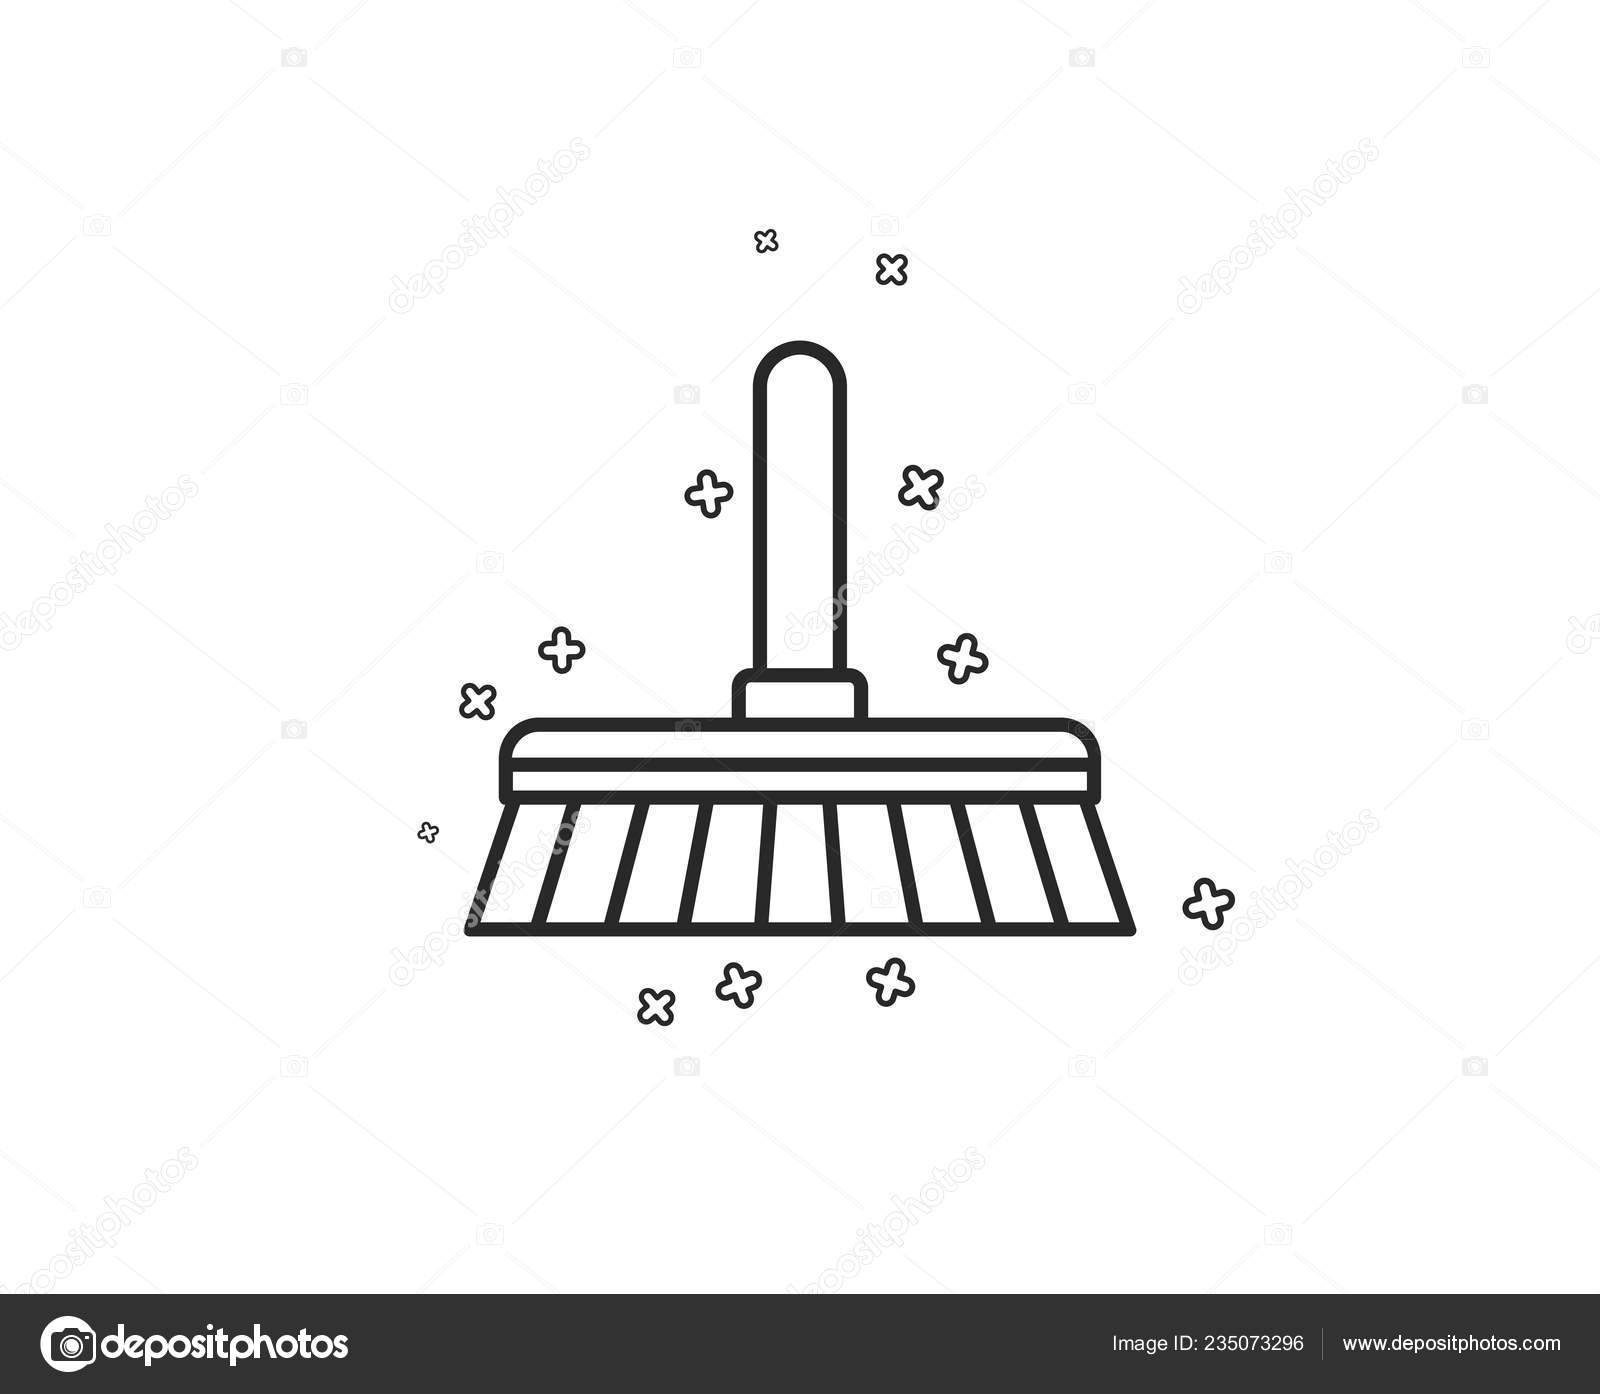 cleaning mop line icon sweep wash floor symbol washing housekeeping stock vector c blankstock 235073296 https depositphotos com 235073296 stock illustration cleaning mop line icon sweep html